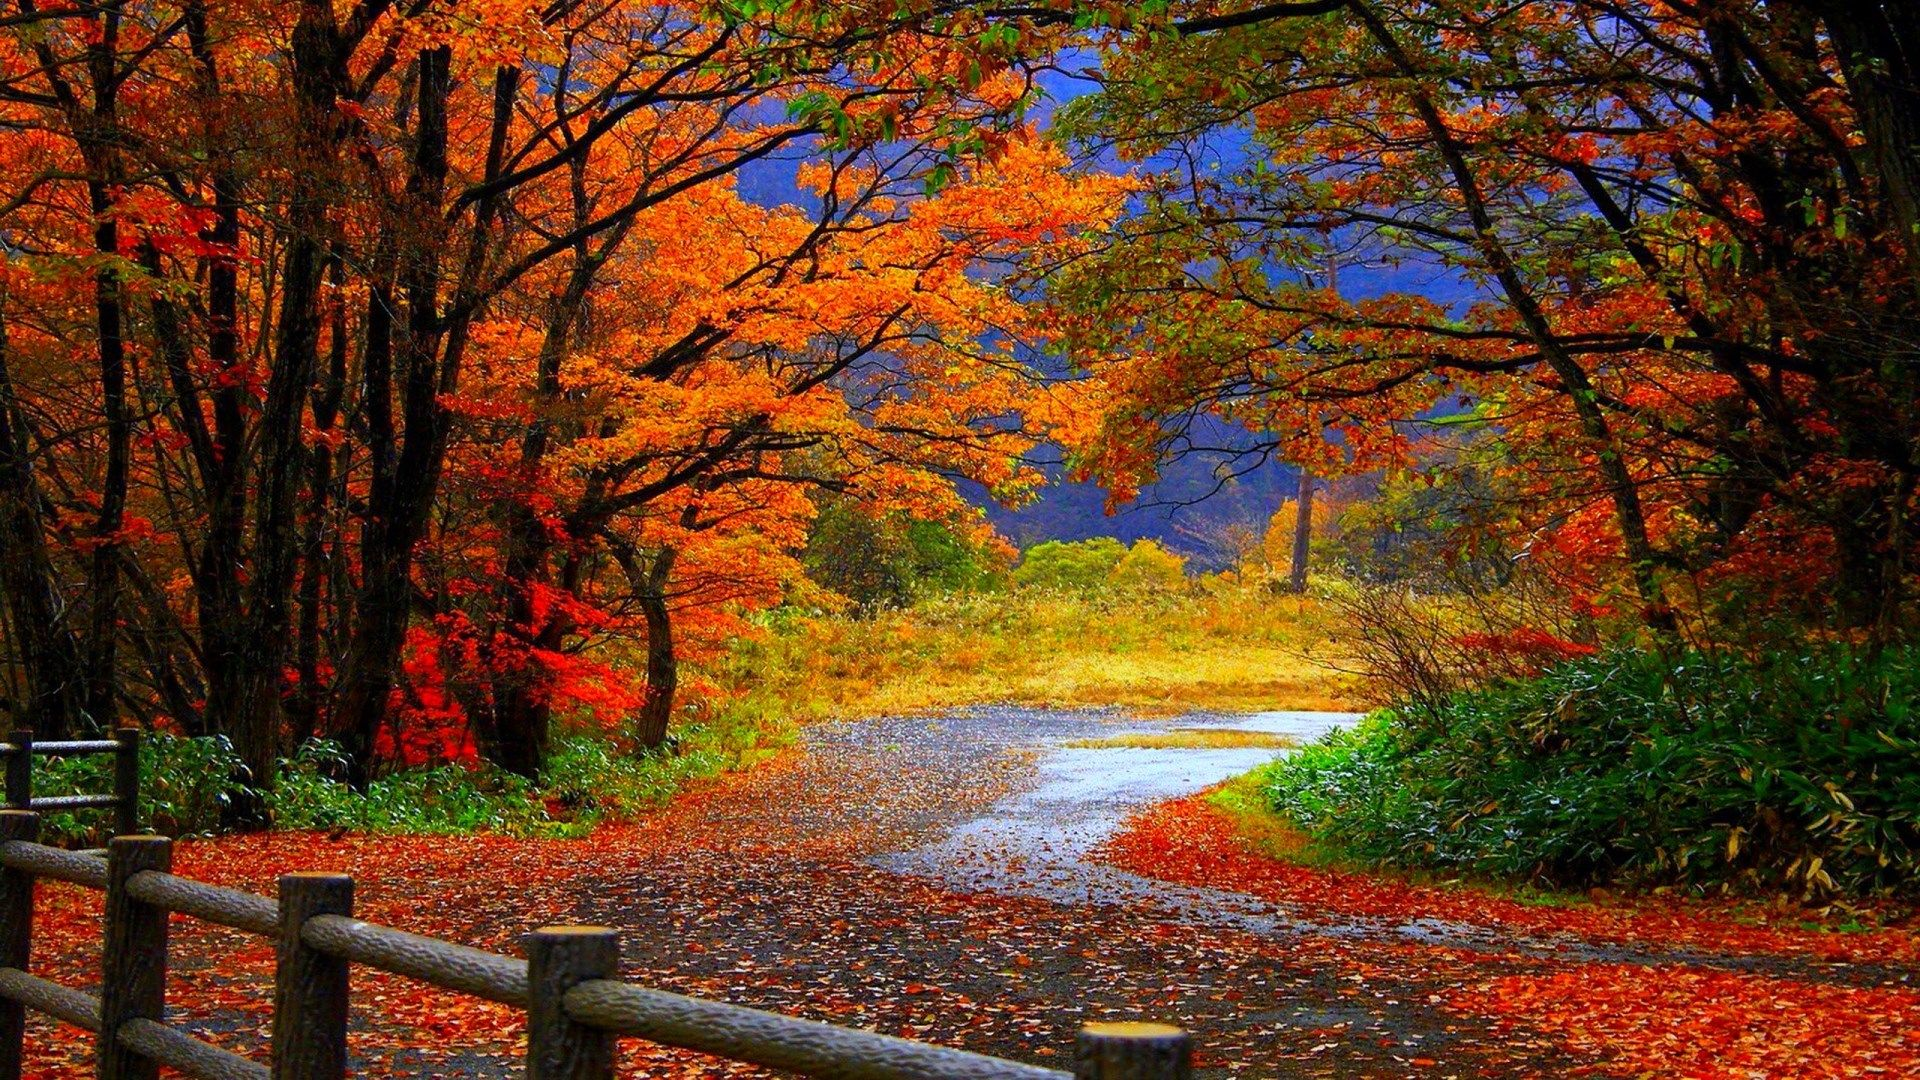 Download Fall Computer High Resolution Images Osennij Pejzazh Osennie Vidy Zhivopisnye Pejzazhi